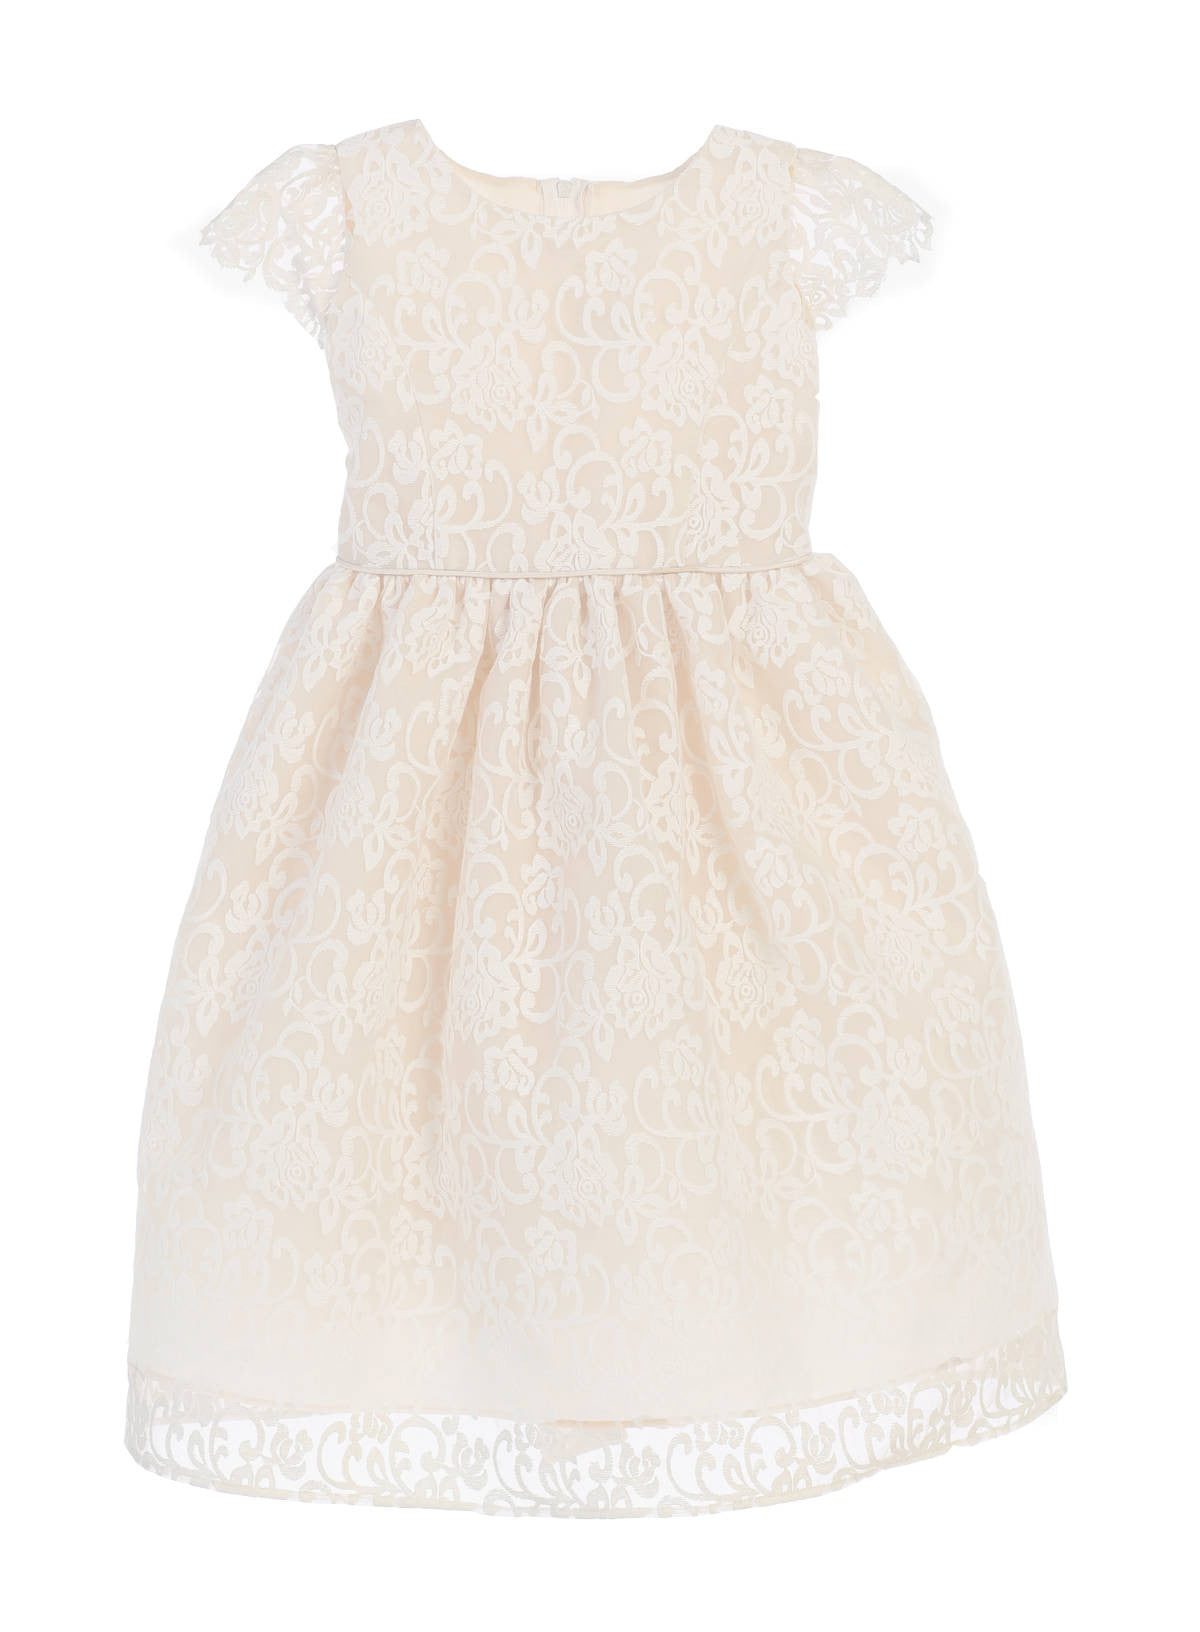 Sweet Kids Classic Floral Embroidered Organza Dress - Champagne, SK688